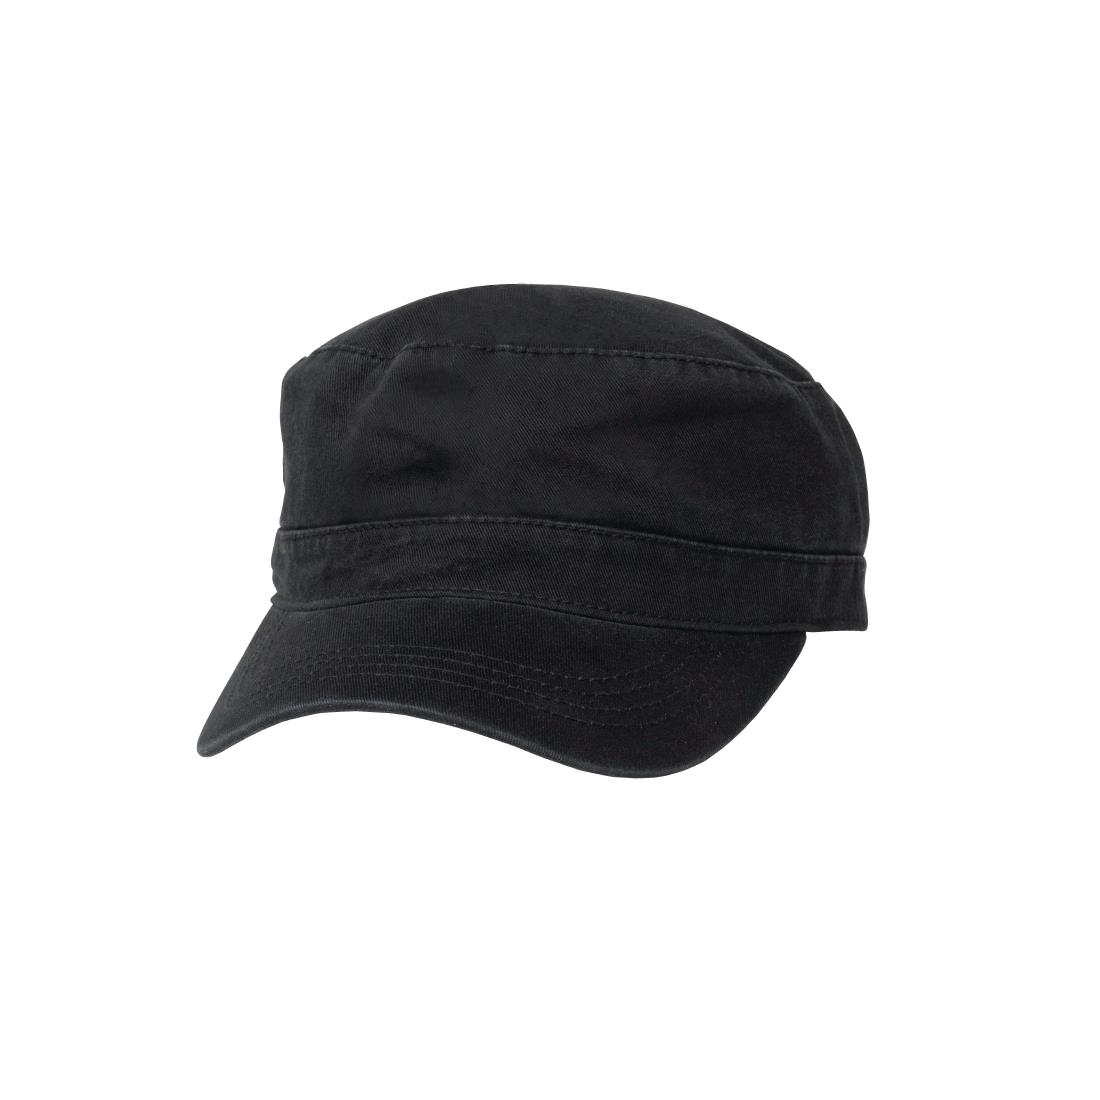 Image of Chef Works Military Cap Black